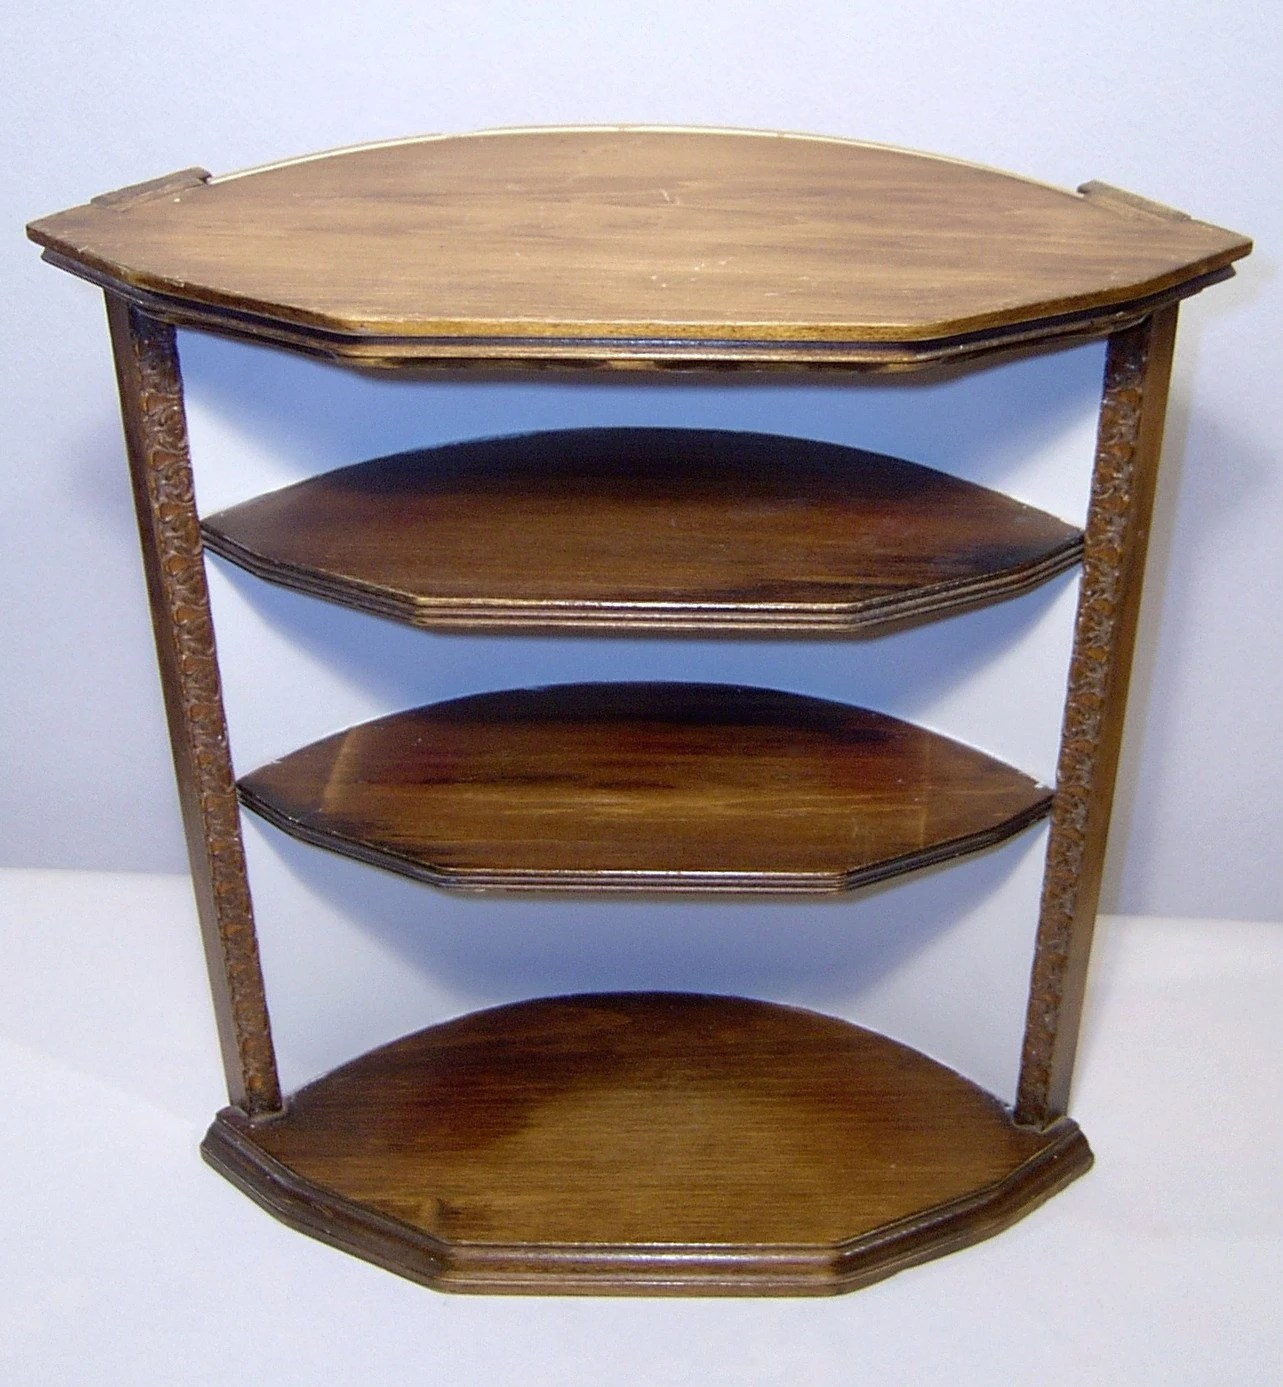 Curved Wood Wall Corner Shelf Hand Crafted 3 Tiers